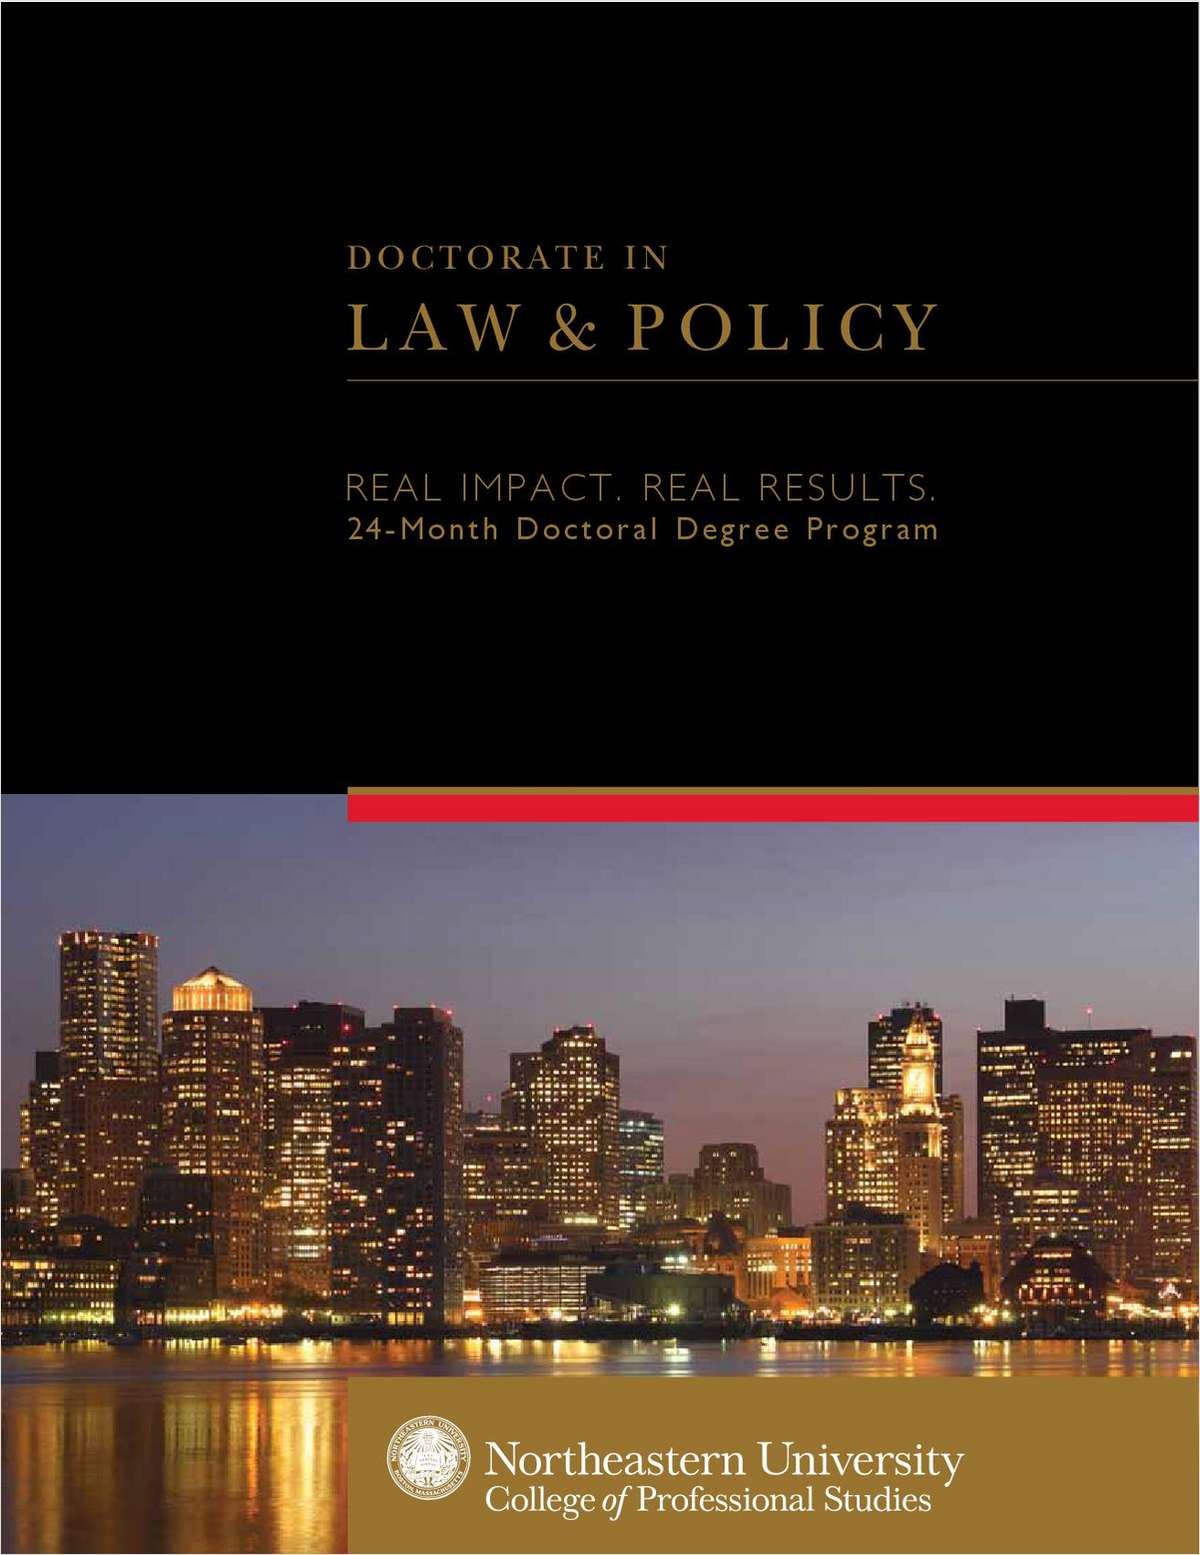 Doctorate in Law & Policy: Real Impact, Real Results